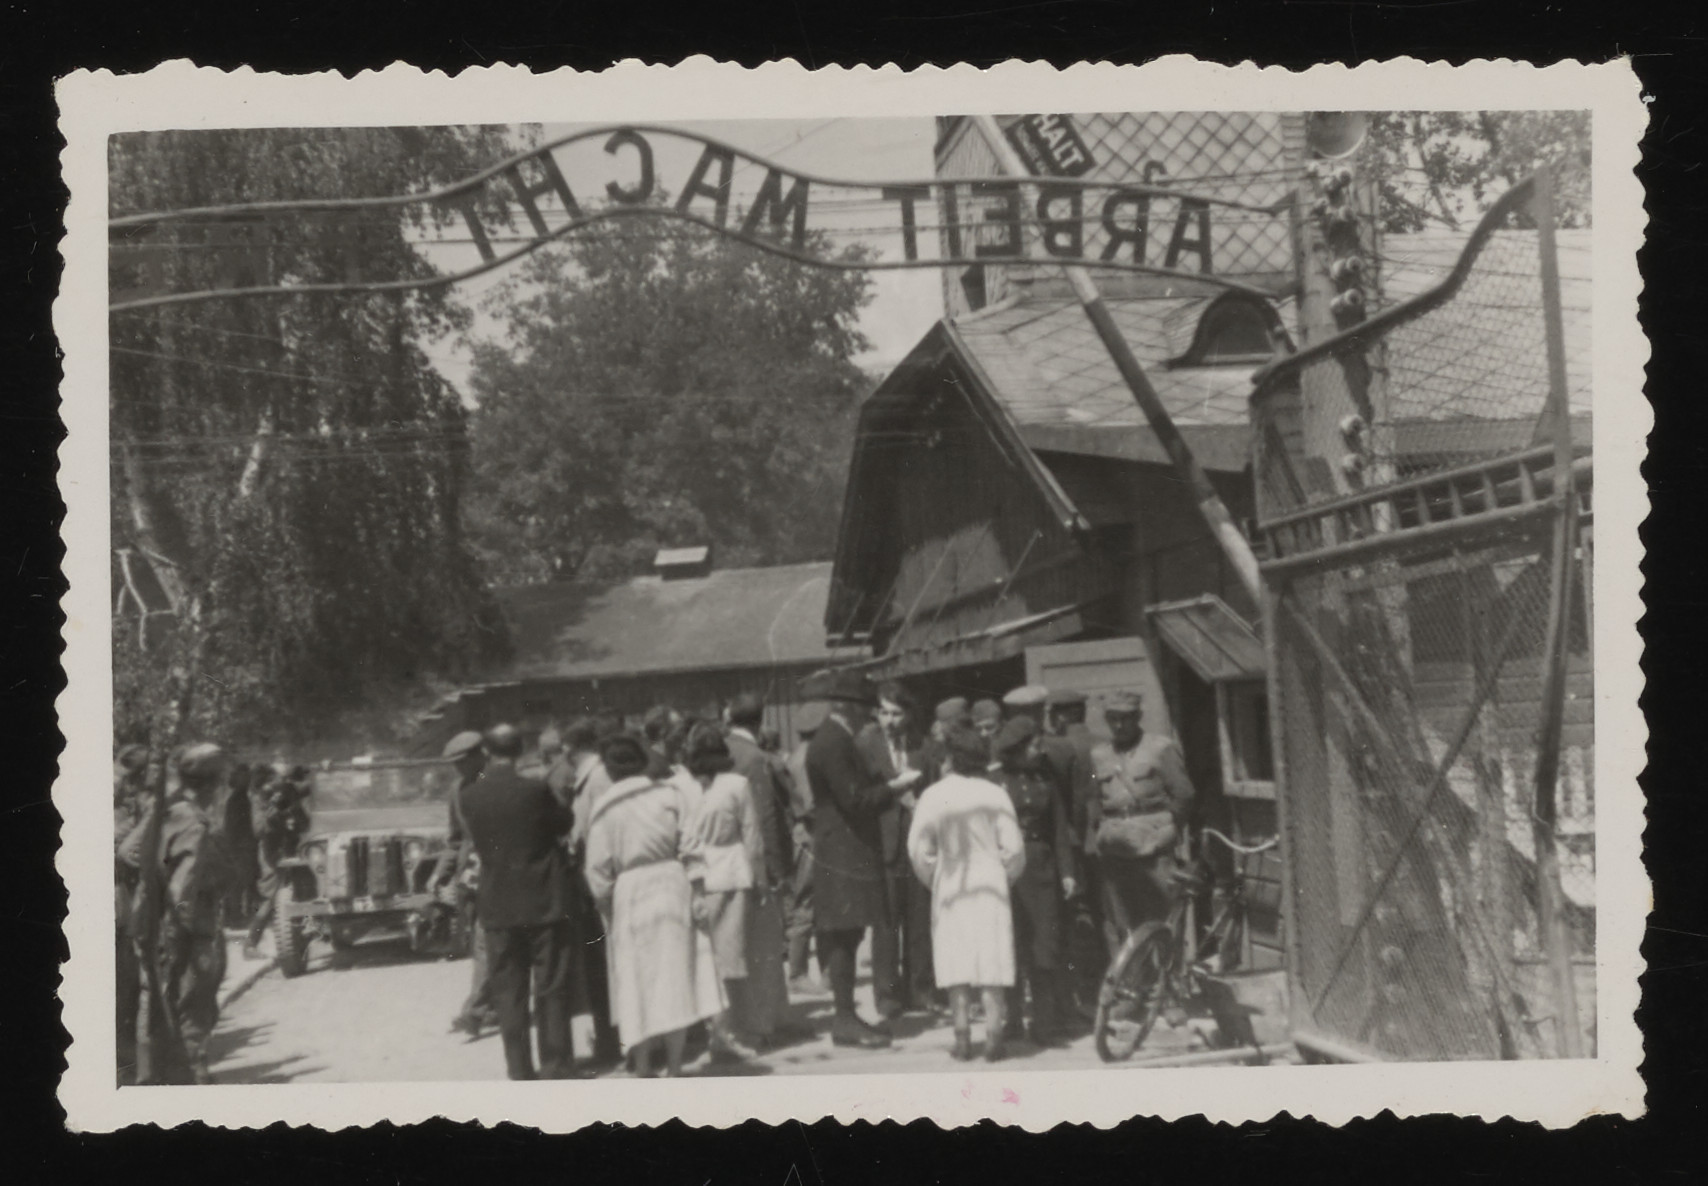 """Members of an international commission of inquiry are gathered beneath the """"Arbeit Macht Frei"""" sign at the entrance to Auschwitz."""